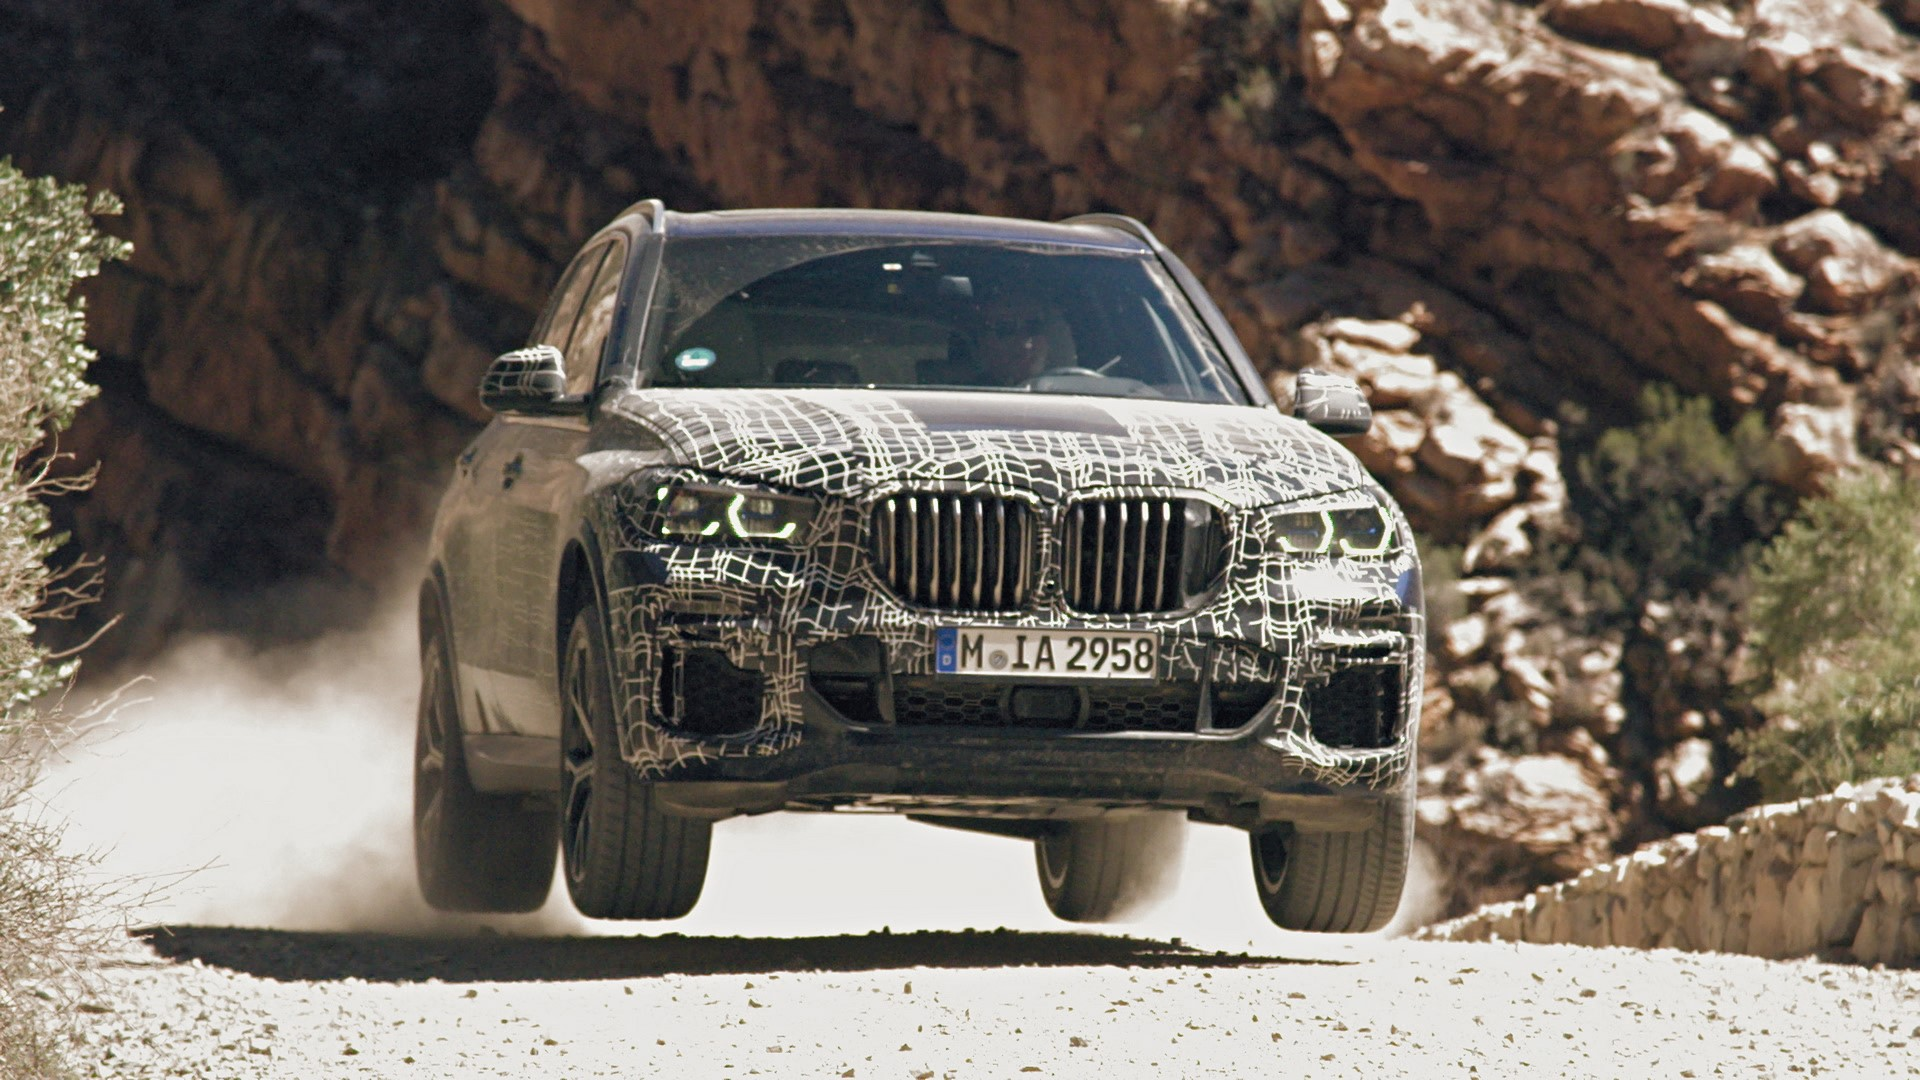 BMW X5 209 spy photos (1)